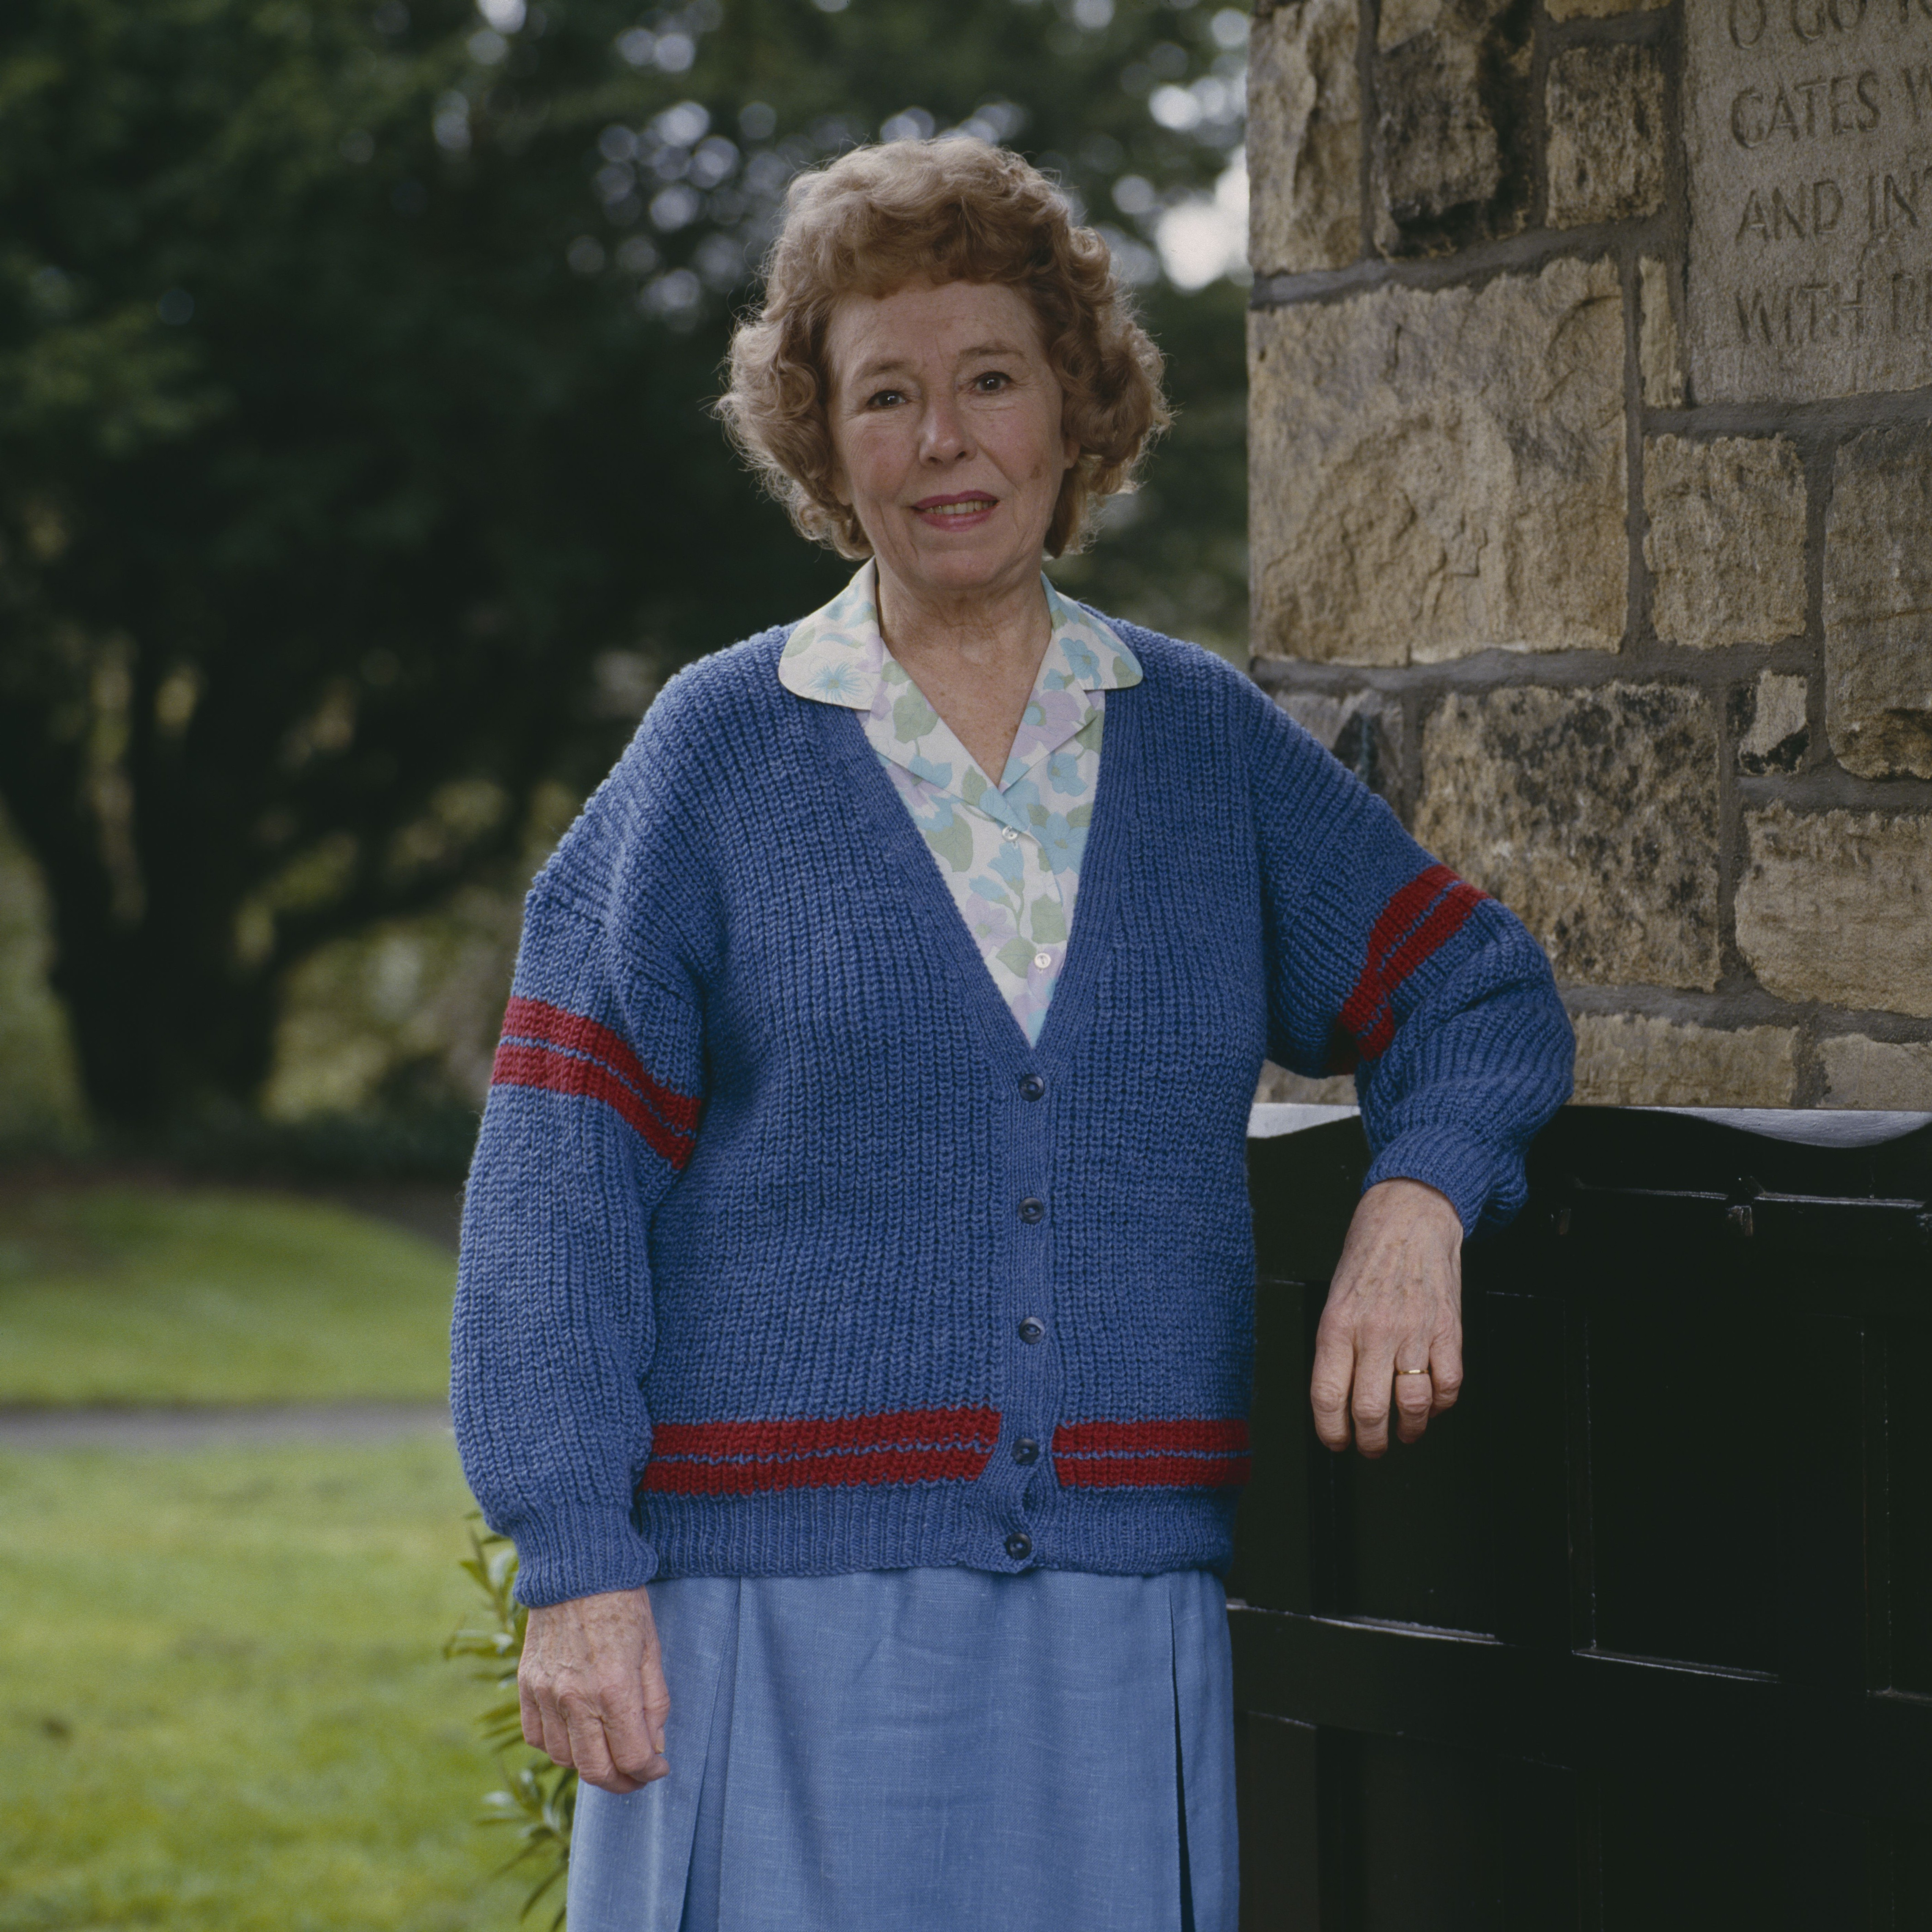 Editorial use only Mandatory Credit: Photo by ITV/Shutterstock (7765730di) Sheila Mercier (as Annie Sugden) 'Emmerdale' TV Series - 1992 Emmerdale Farm is a long-running British soap opera set in Emmerdale, a fictional village in the Yorkshire Dales. Created by Kevin Laffan, it first broadcast on 16 October 1972 and produced by ITV Yorkshire.